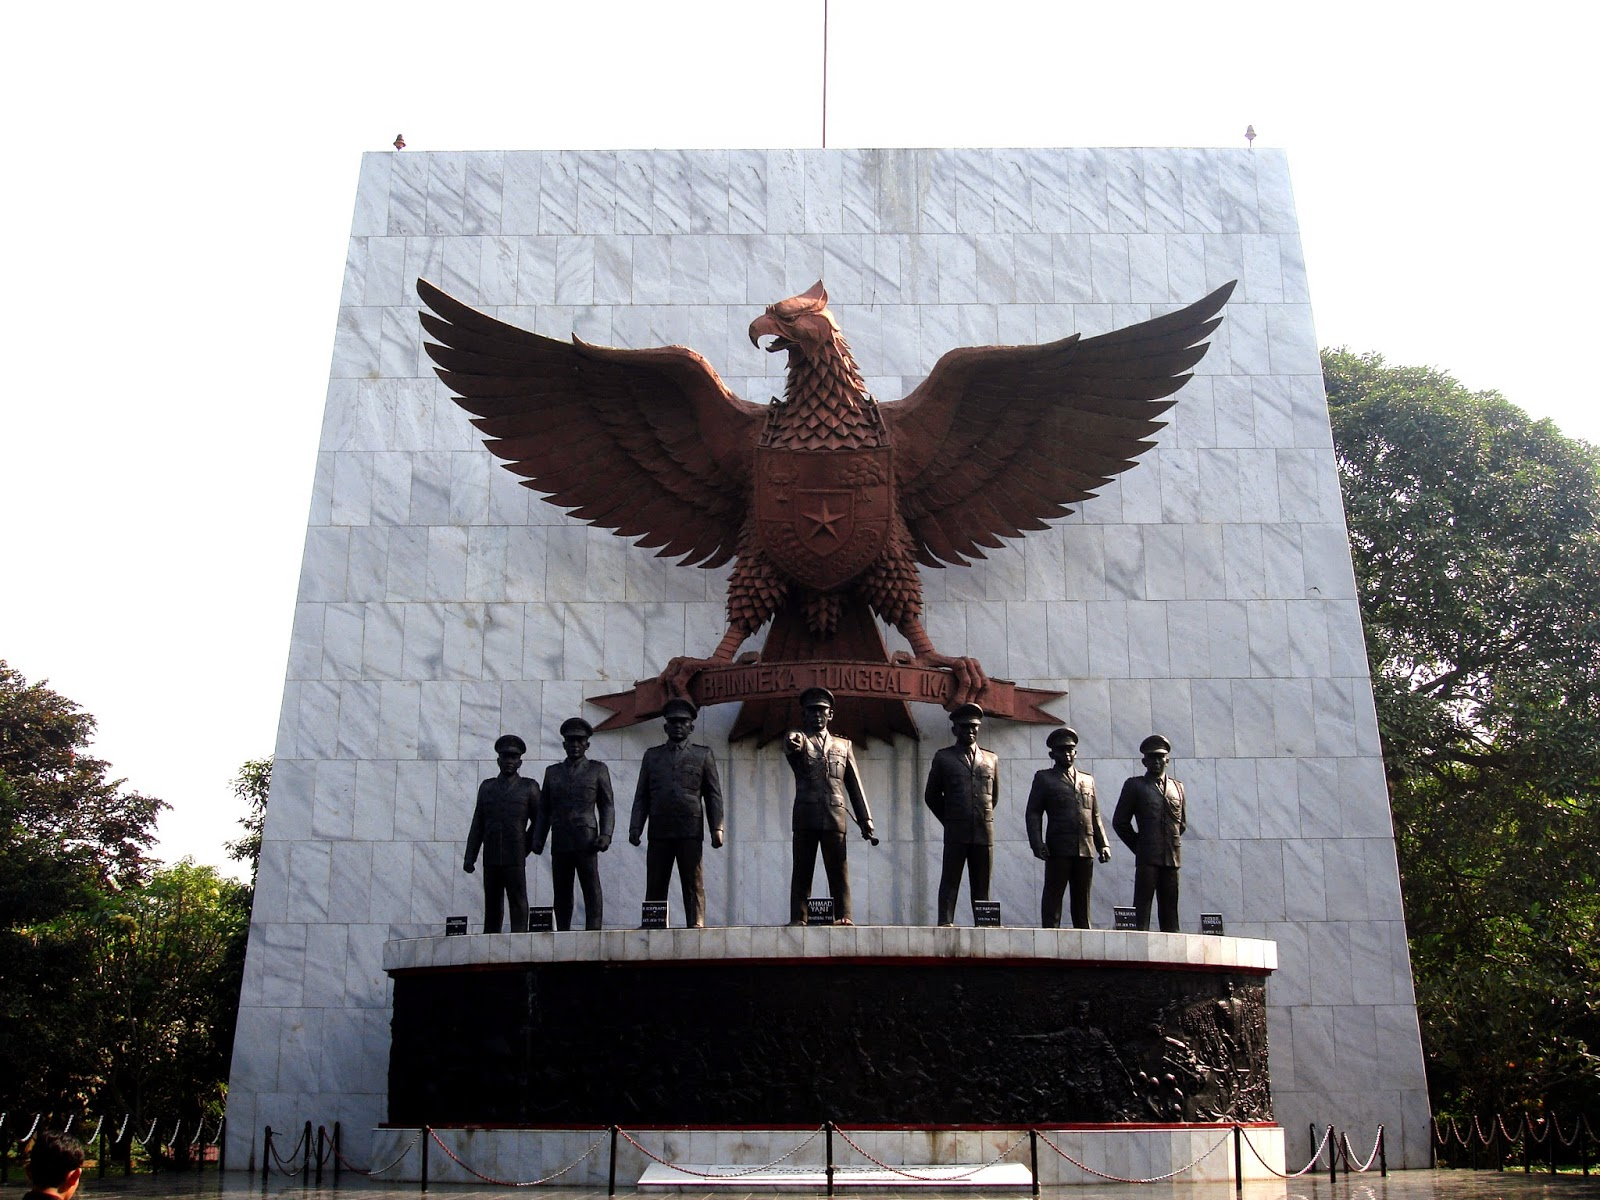 historical and iconic statue in Indonesia is the Pancasila Sakti Monument